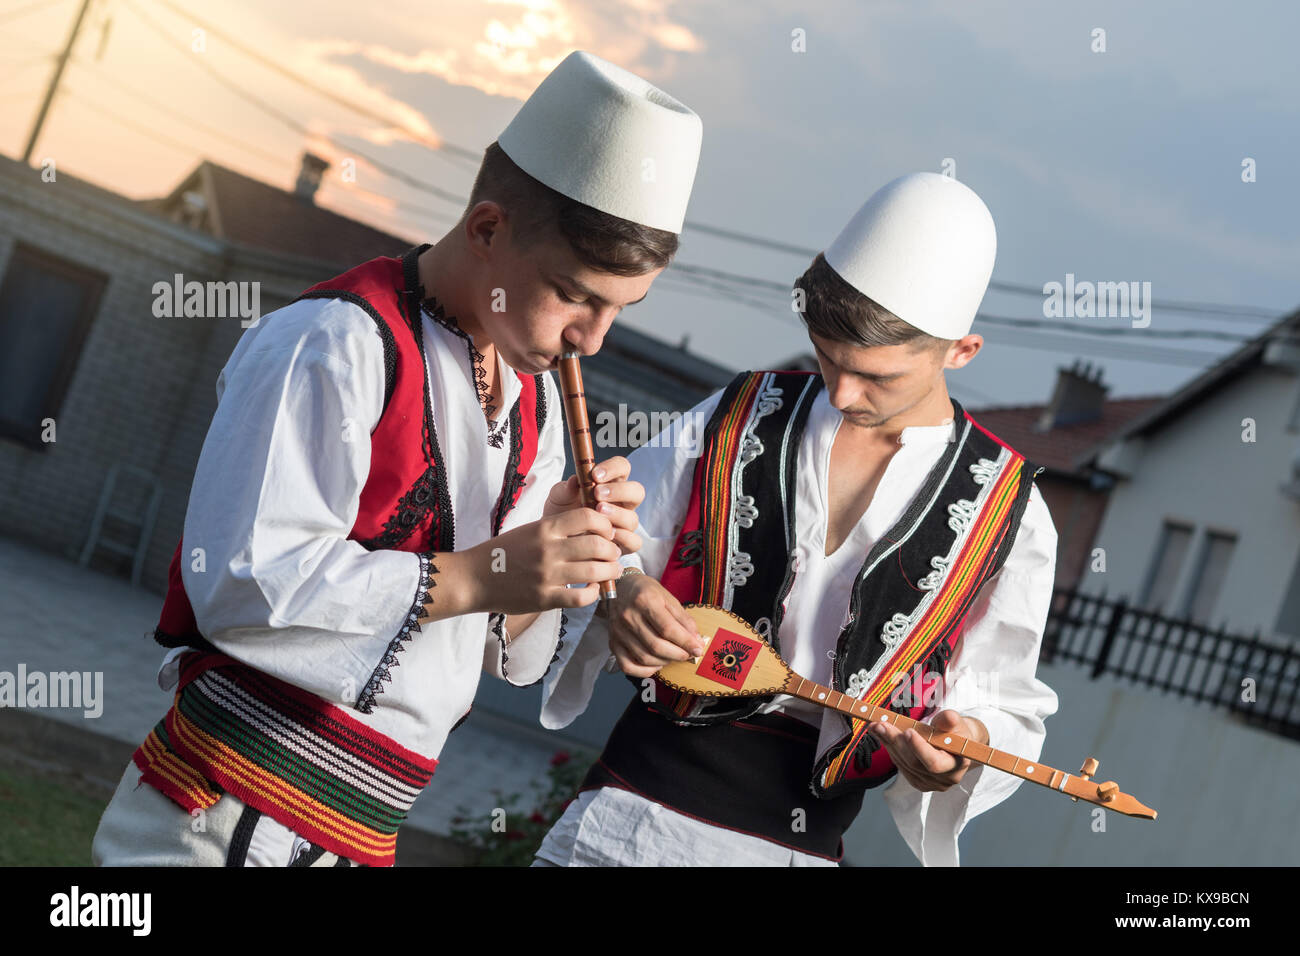 teen boys in traditional albanian costume playing music with flute and string instrument in the evening sunlight - Stock Image